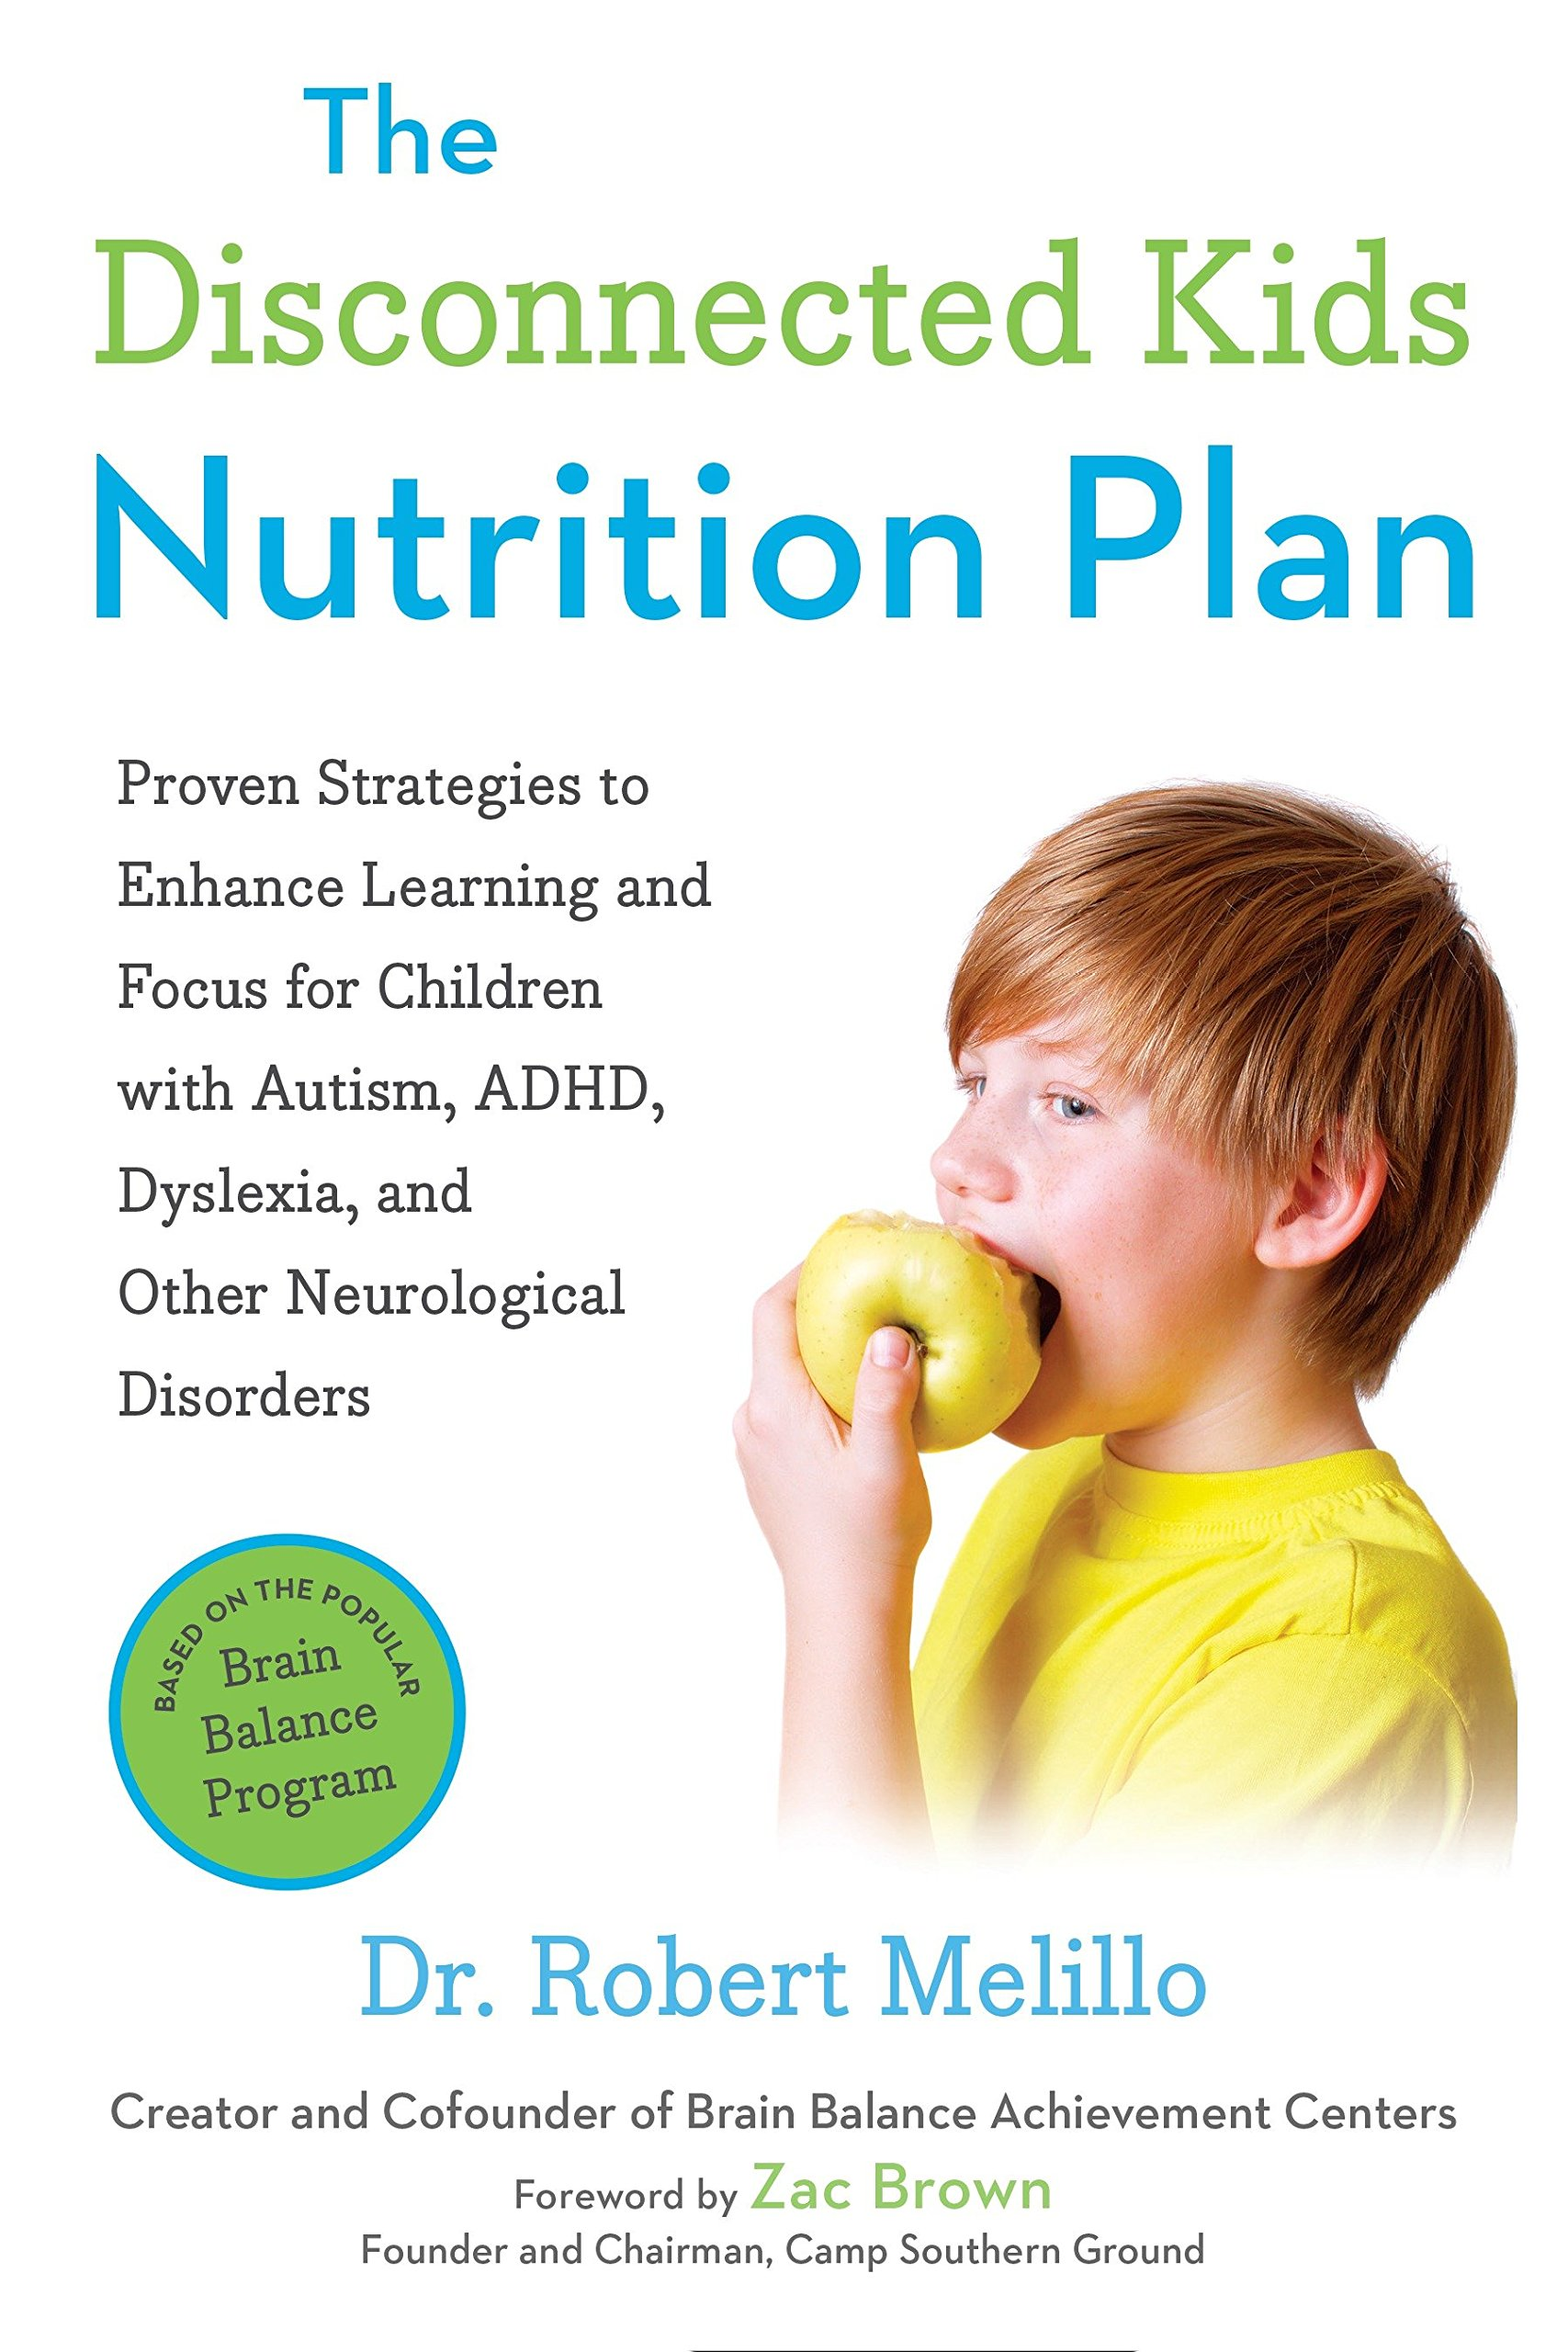 The Disconnected Kids Nutrition Plan: Proven Strategies to Enhance Learning and Focus for Children with Autism, ADHD, Dyslexia, and Other Neurological Disorders (The Disconnected Kids Series) pdf